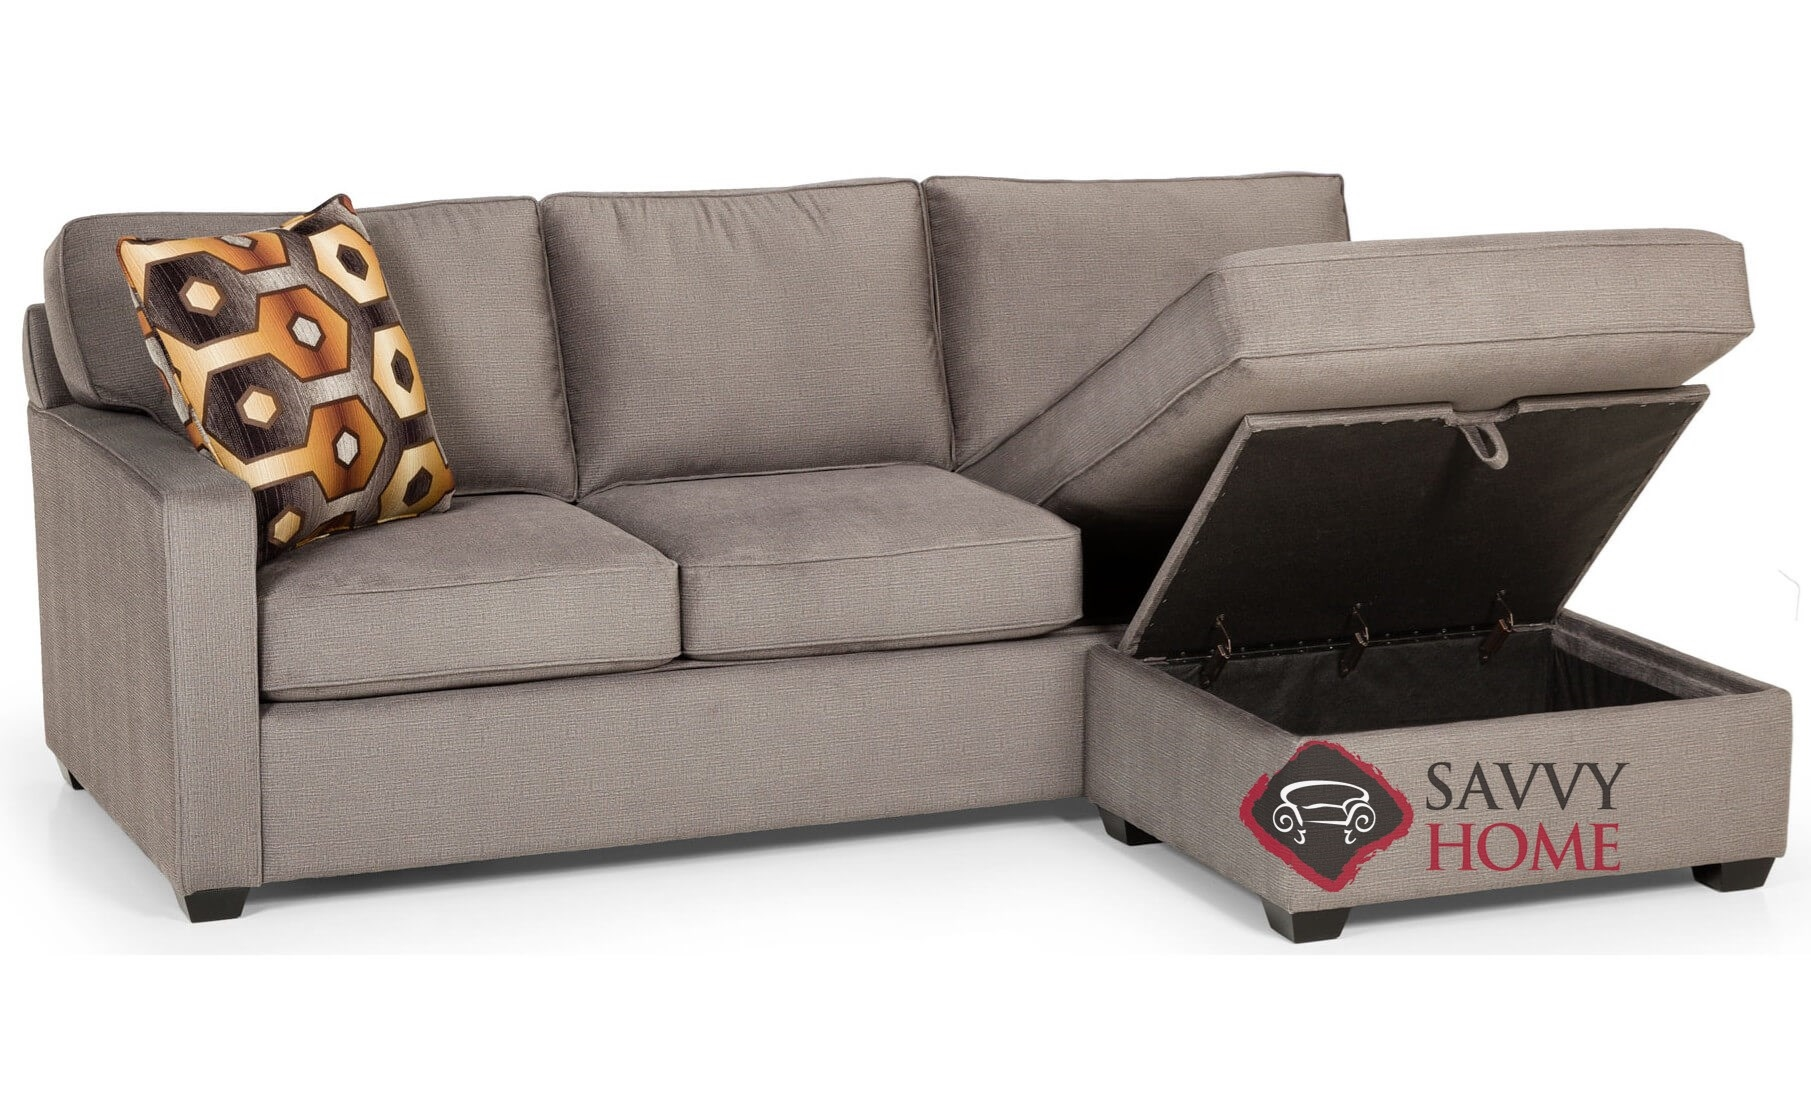 403 fabric chaise sectional by stanton is fully customizable by you Loveseat chaise sectional